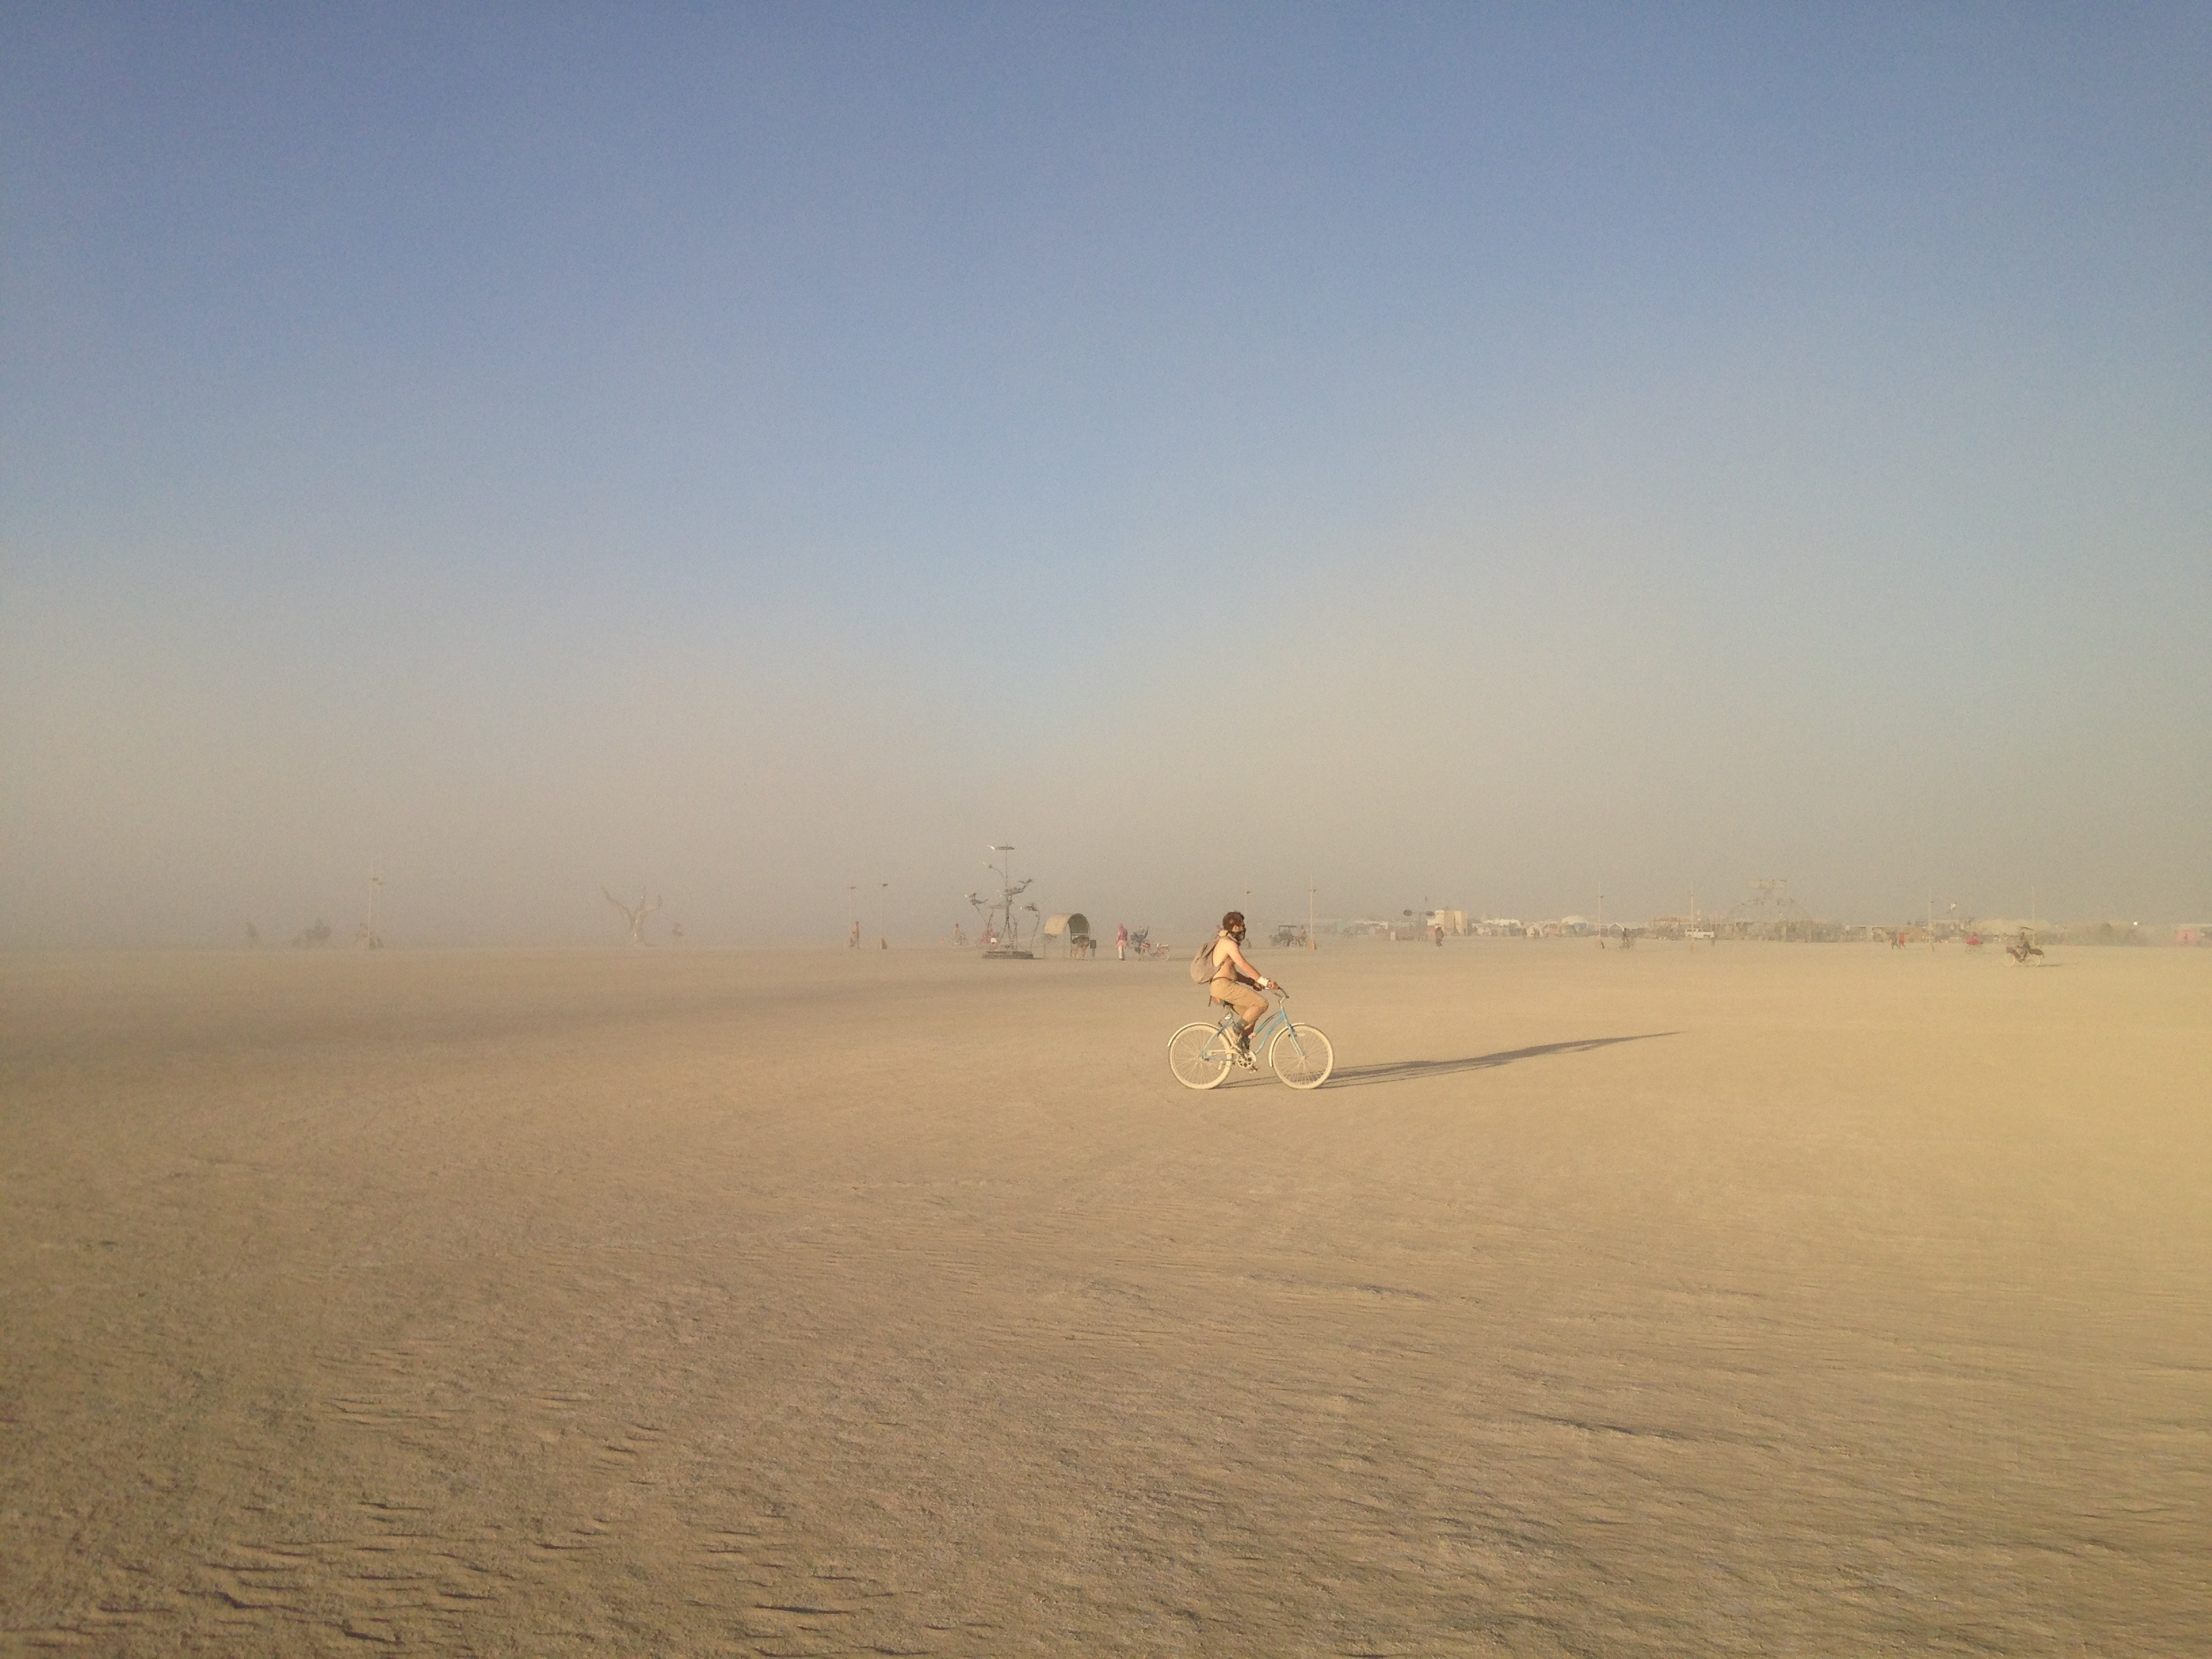 Burning Man desert